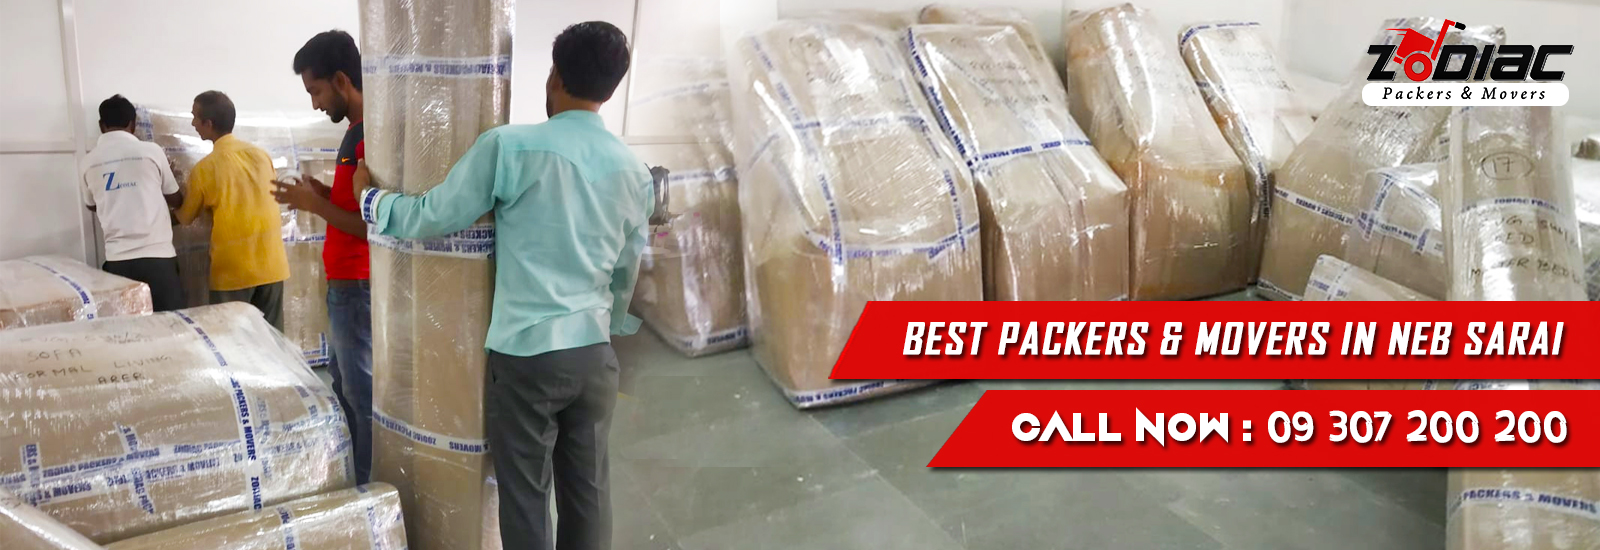 Packers and Movers in Neb Sarai